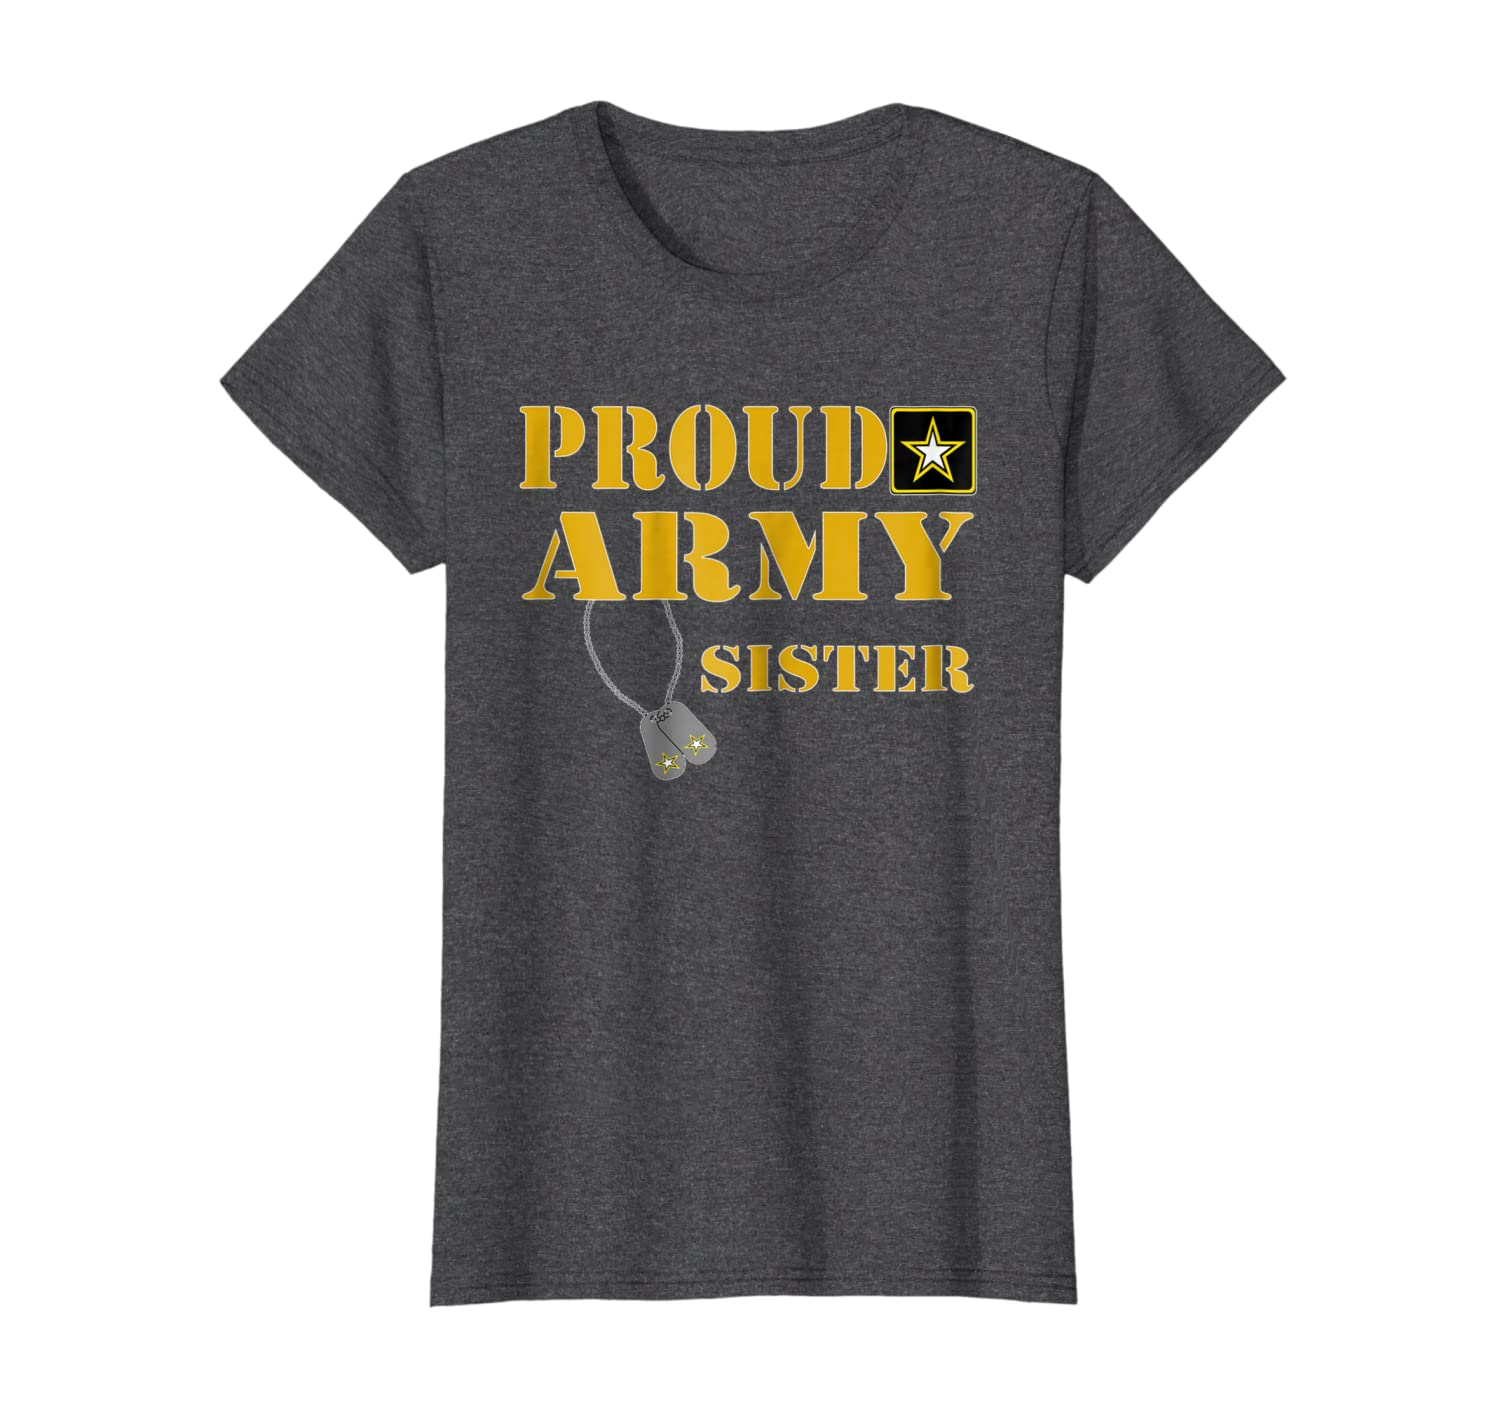 U.S. ARMY Proud US Army Sister Shirt Military Pride T-Shirt-Loveshirt